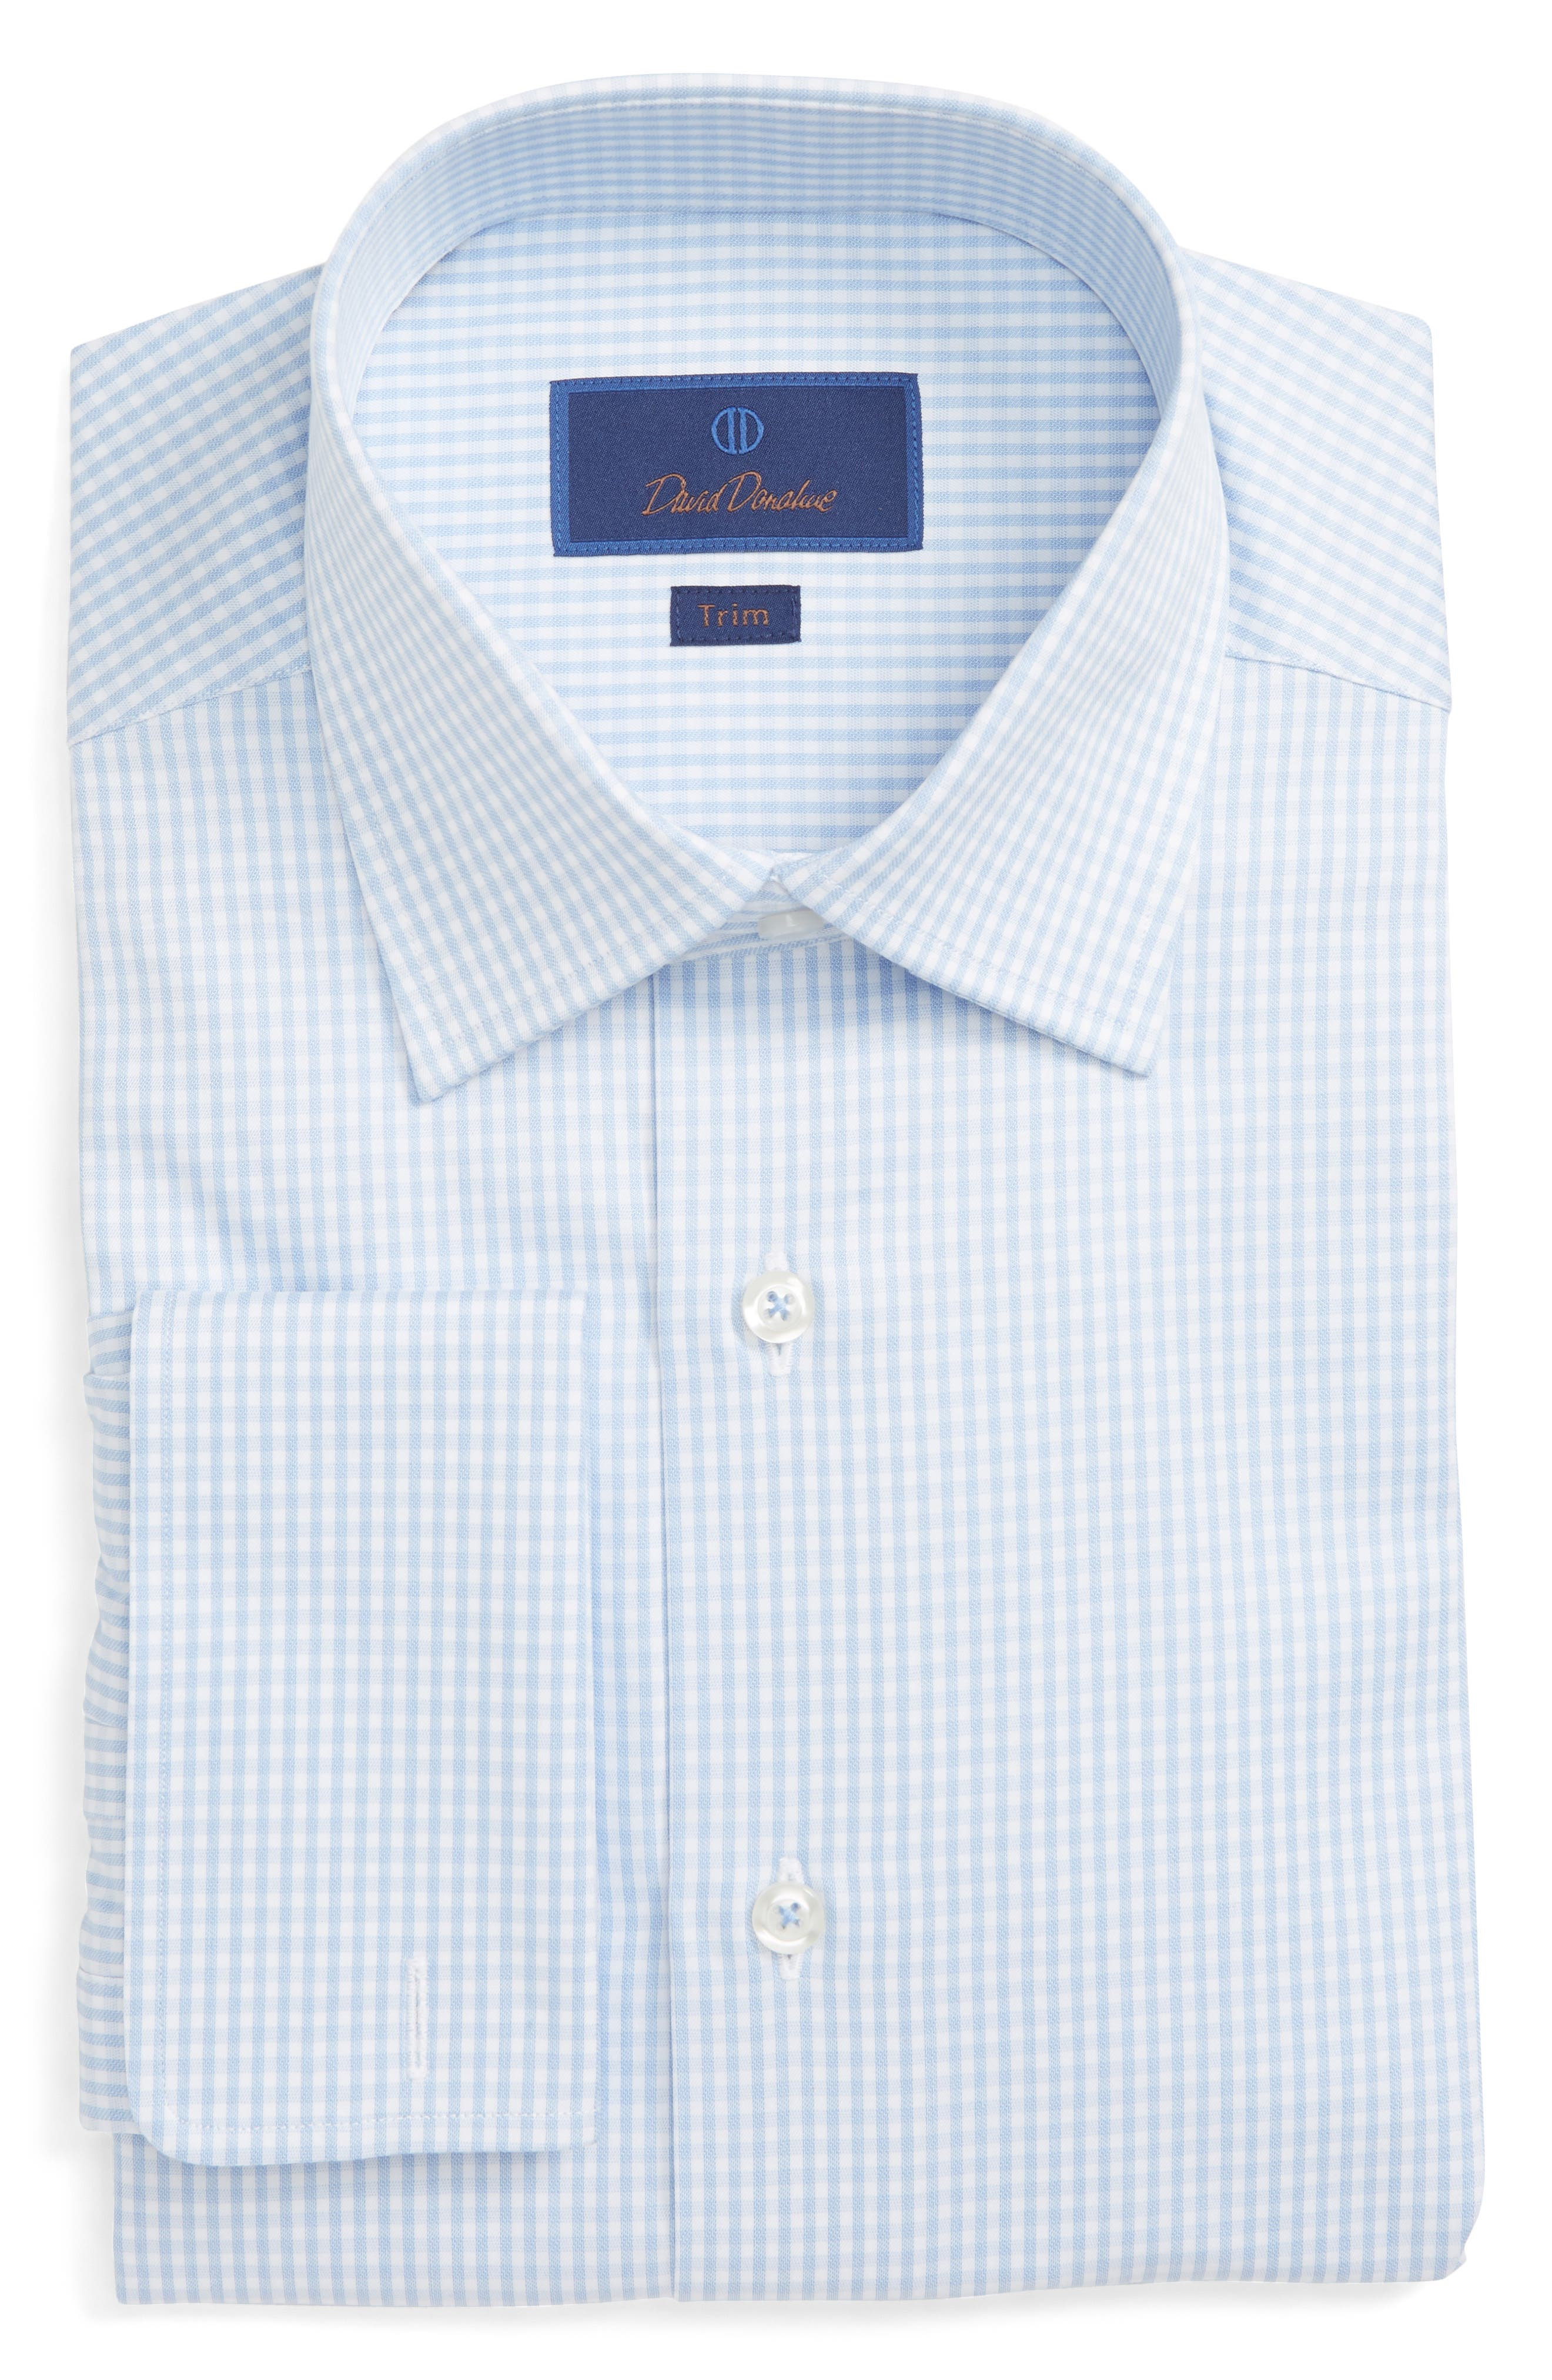 Men'S Trim-Fit Classic Gingham Dress Shirt With French Cuffs in Sky